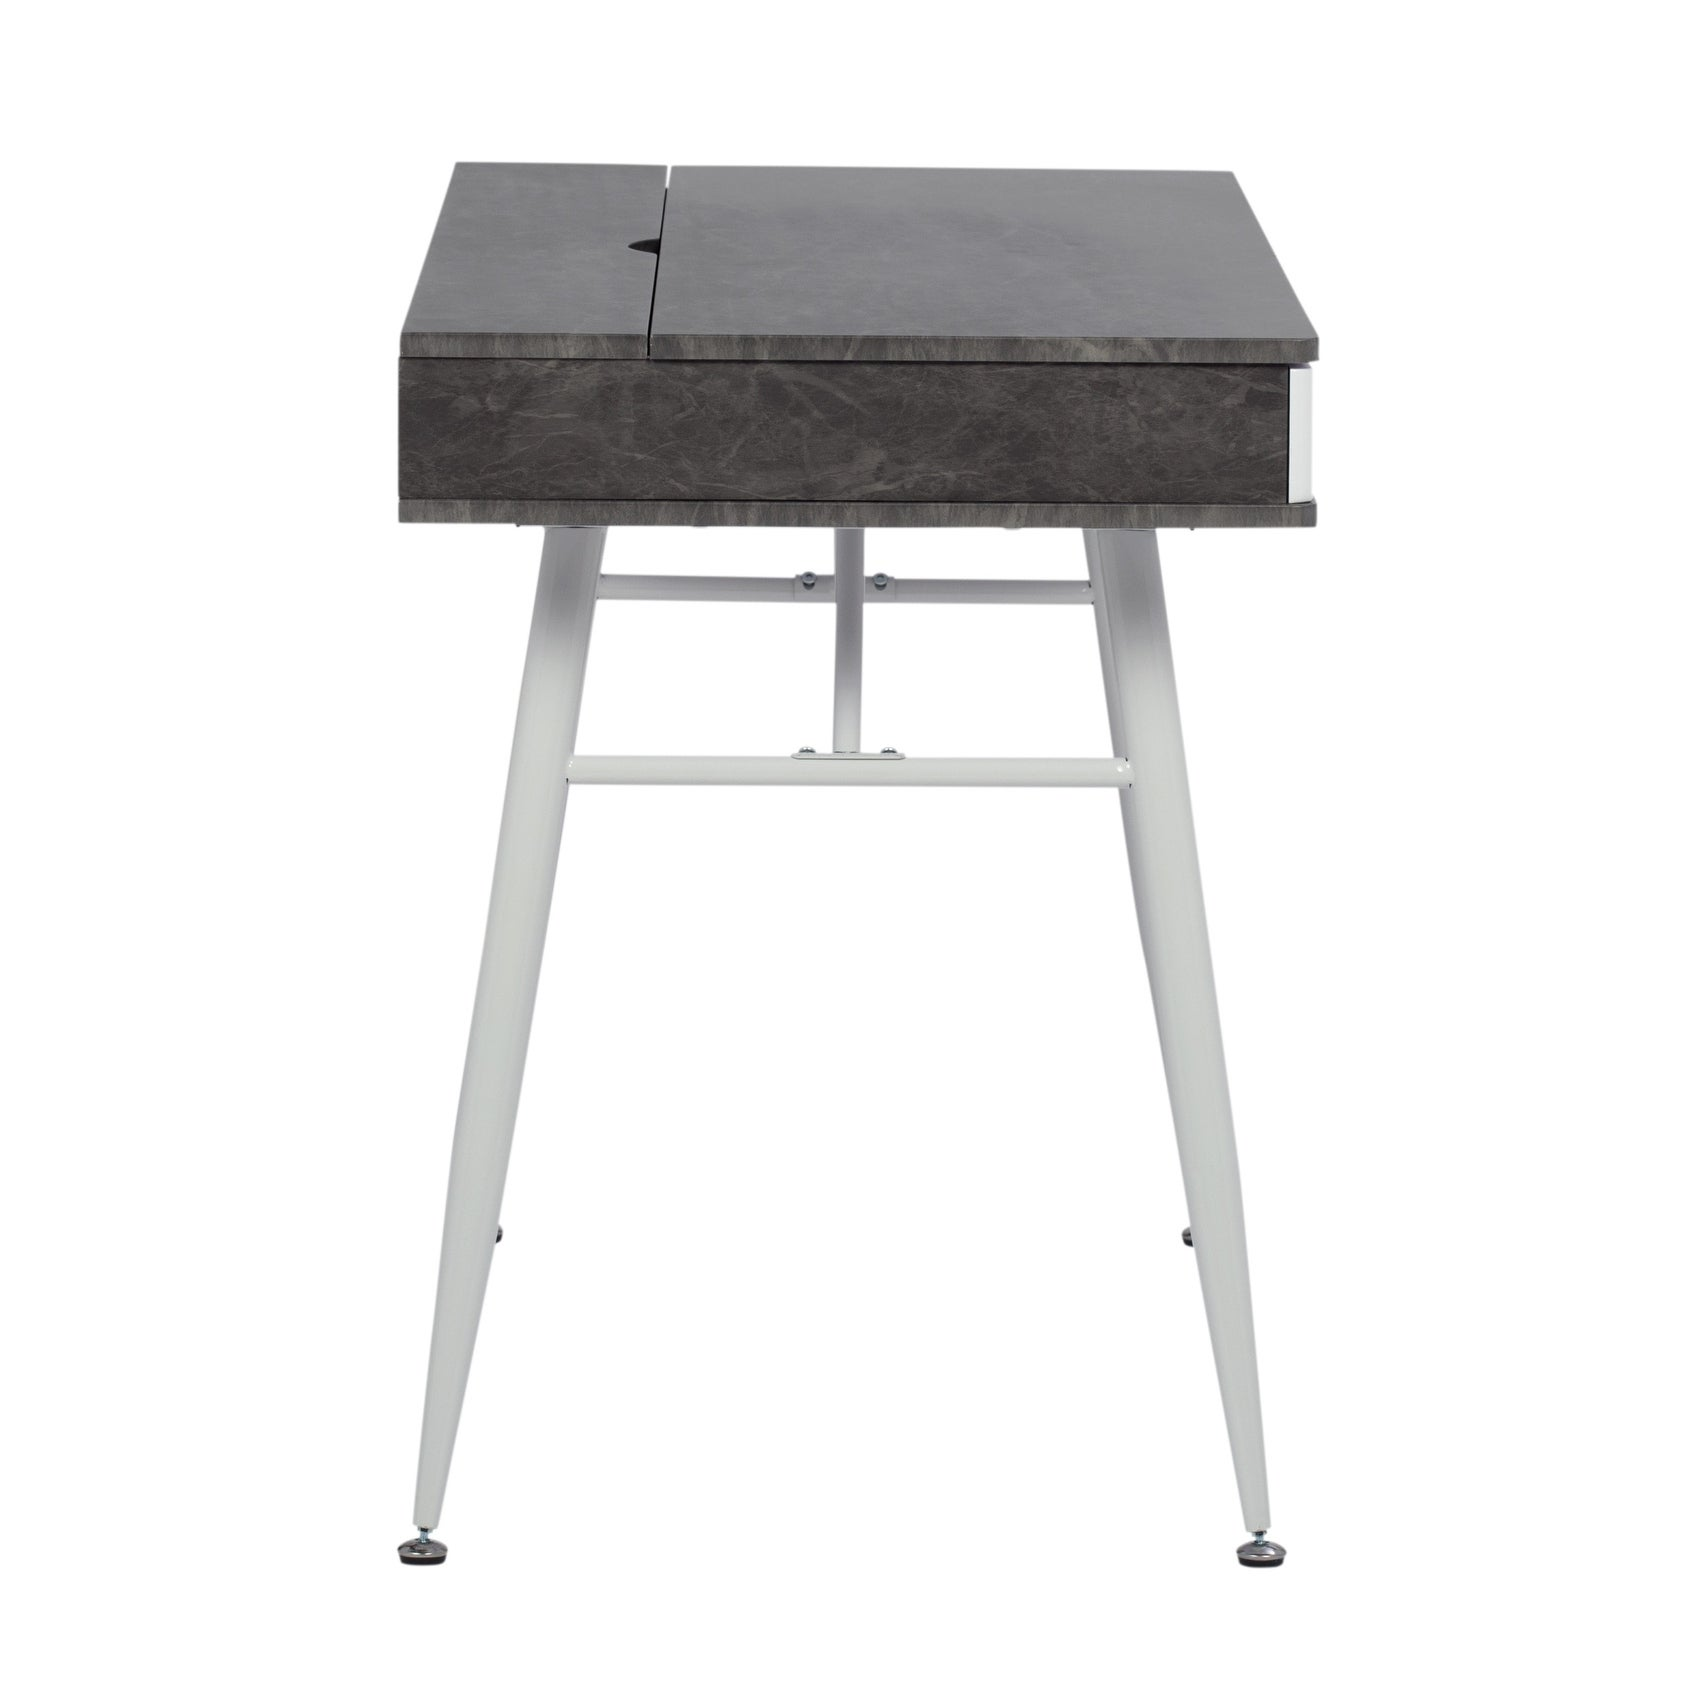 Calico Designs Alcove Modern Desk With Large Split Drawer Overstock 22988014 White Brown Assembly Required Student Desks Writing Desks